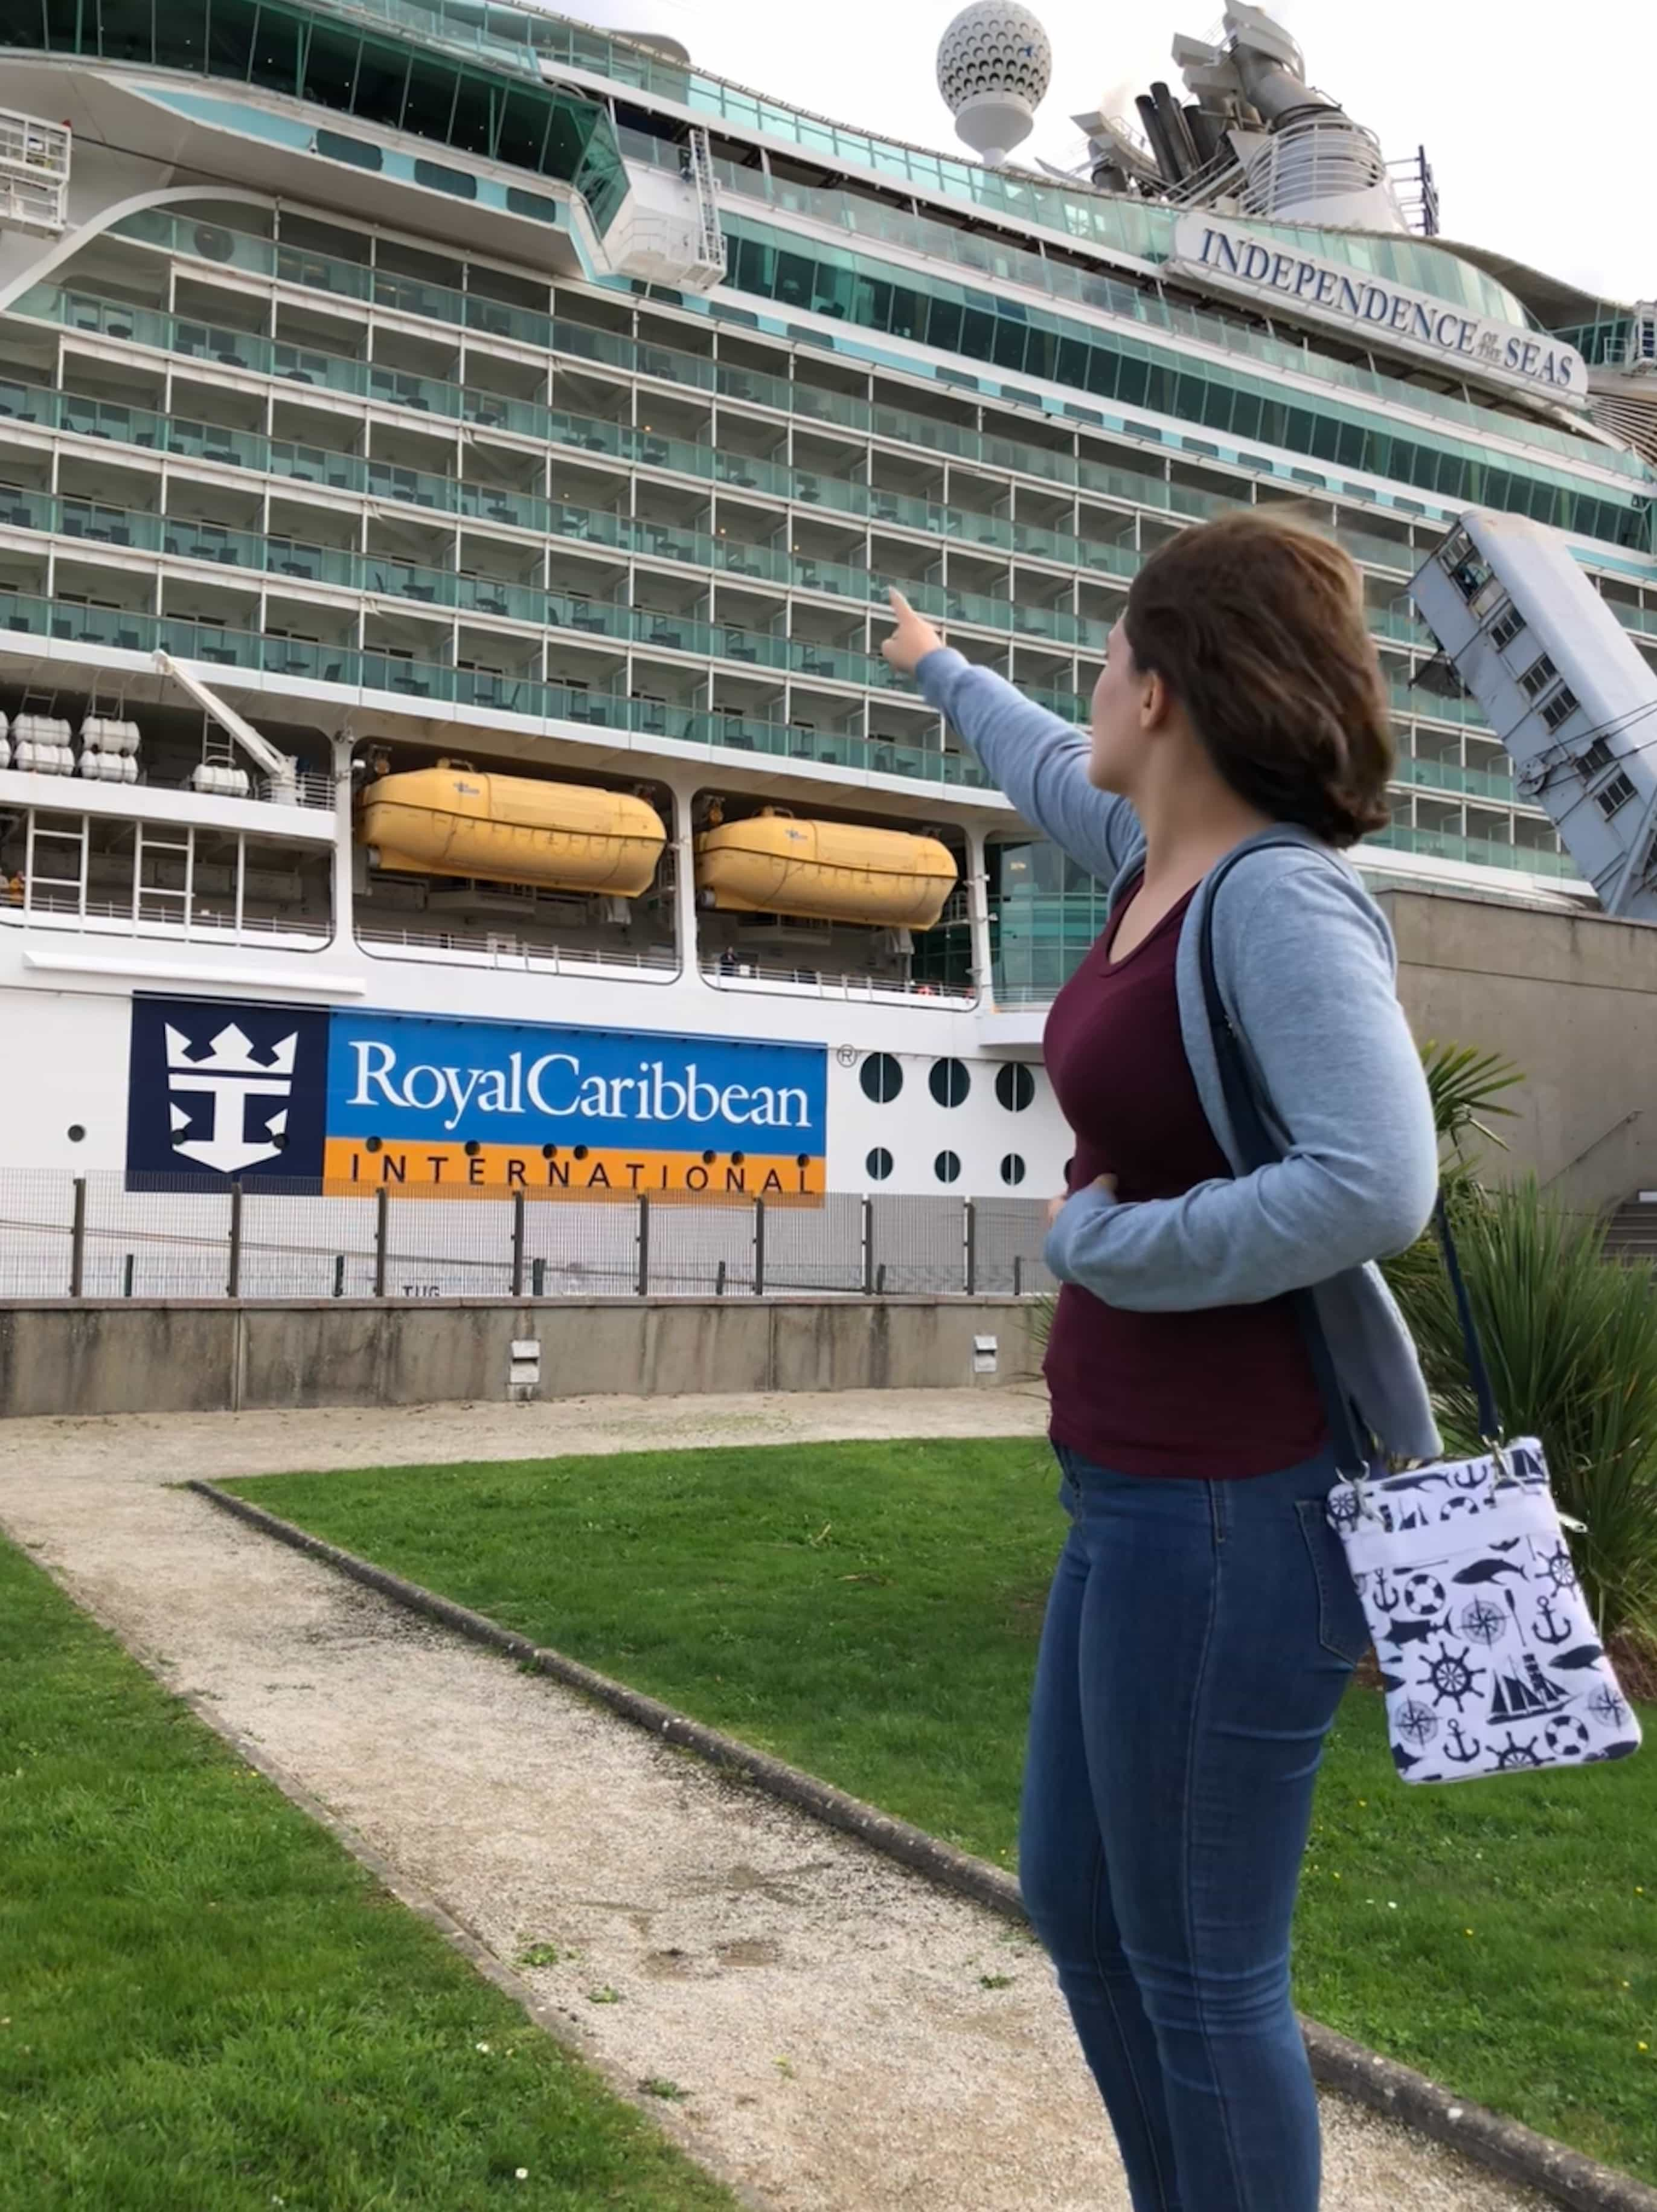 royal caribbean independence of the seas girl pointing at cruise ship nautical bag